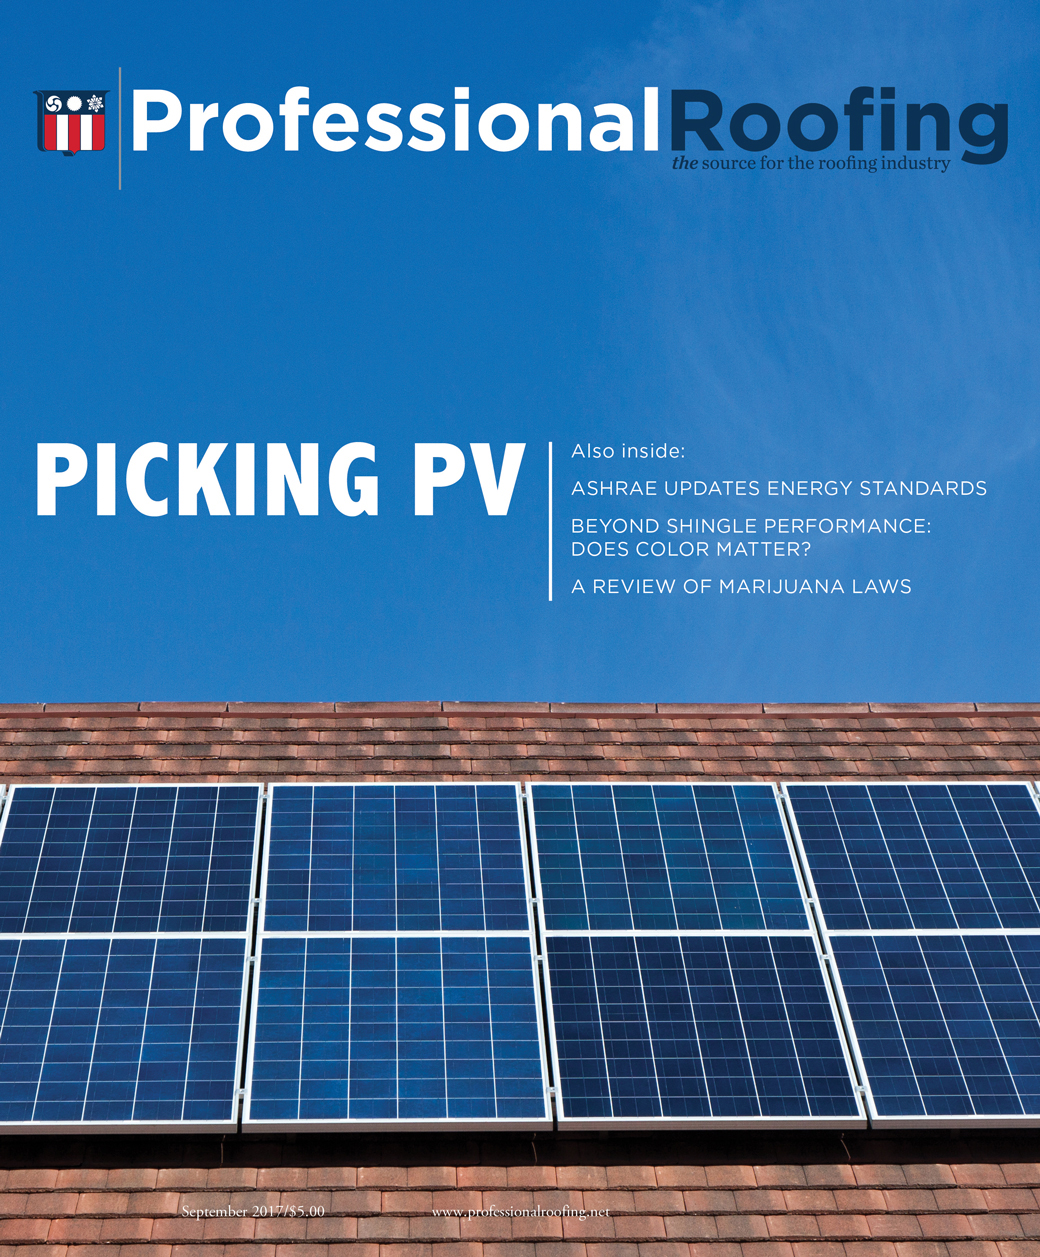 Professional Roofing Magazine 9/1/2017